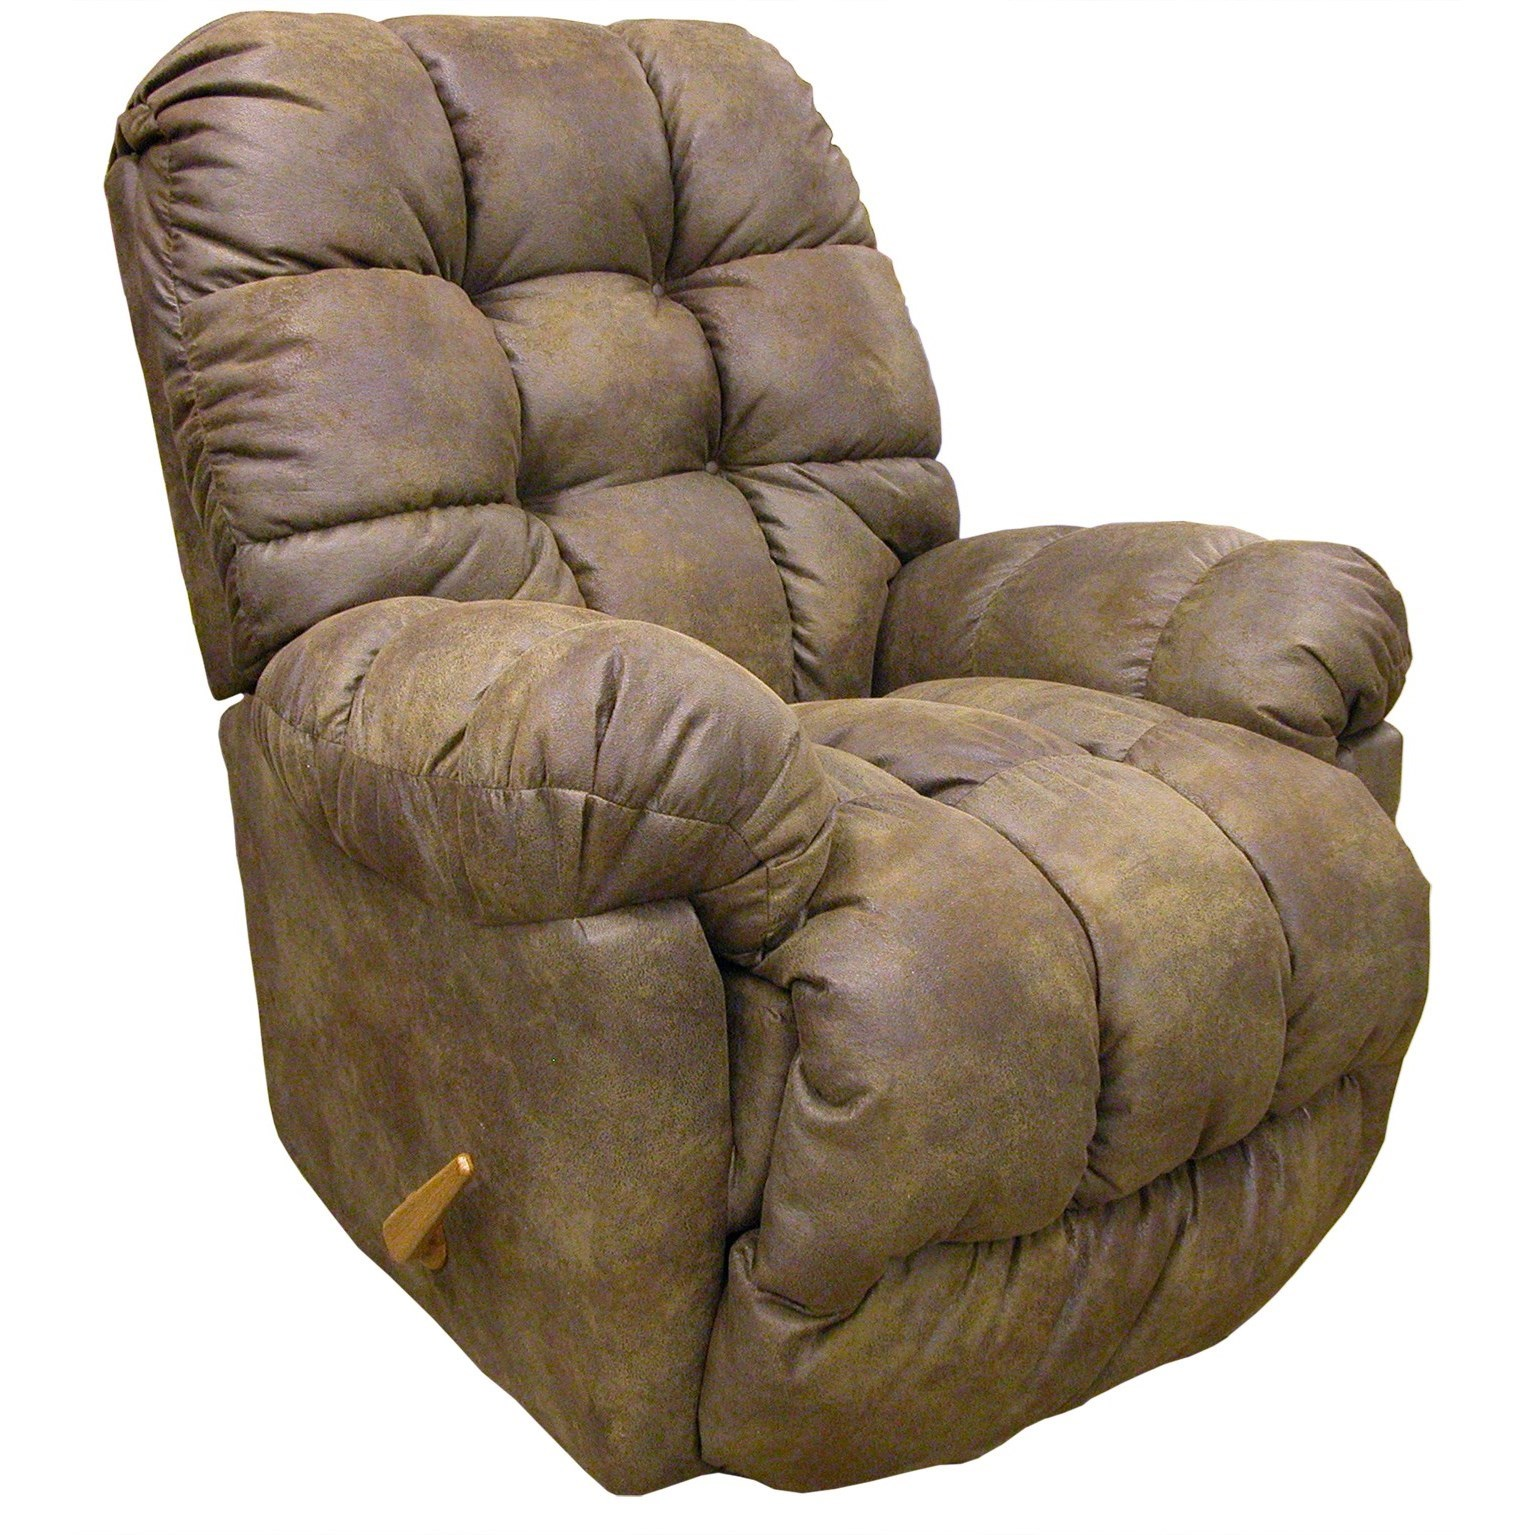 rocking recliner chairs ethan allen chair covers best home furnishings medium recliners 9mw87 1 brosmer